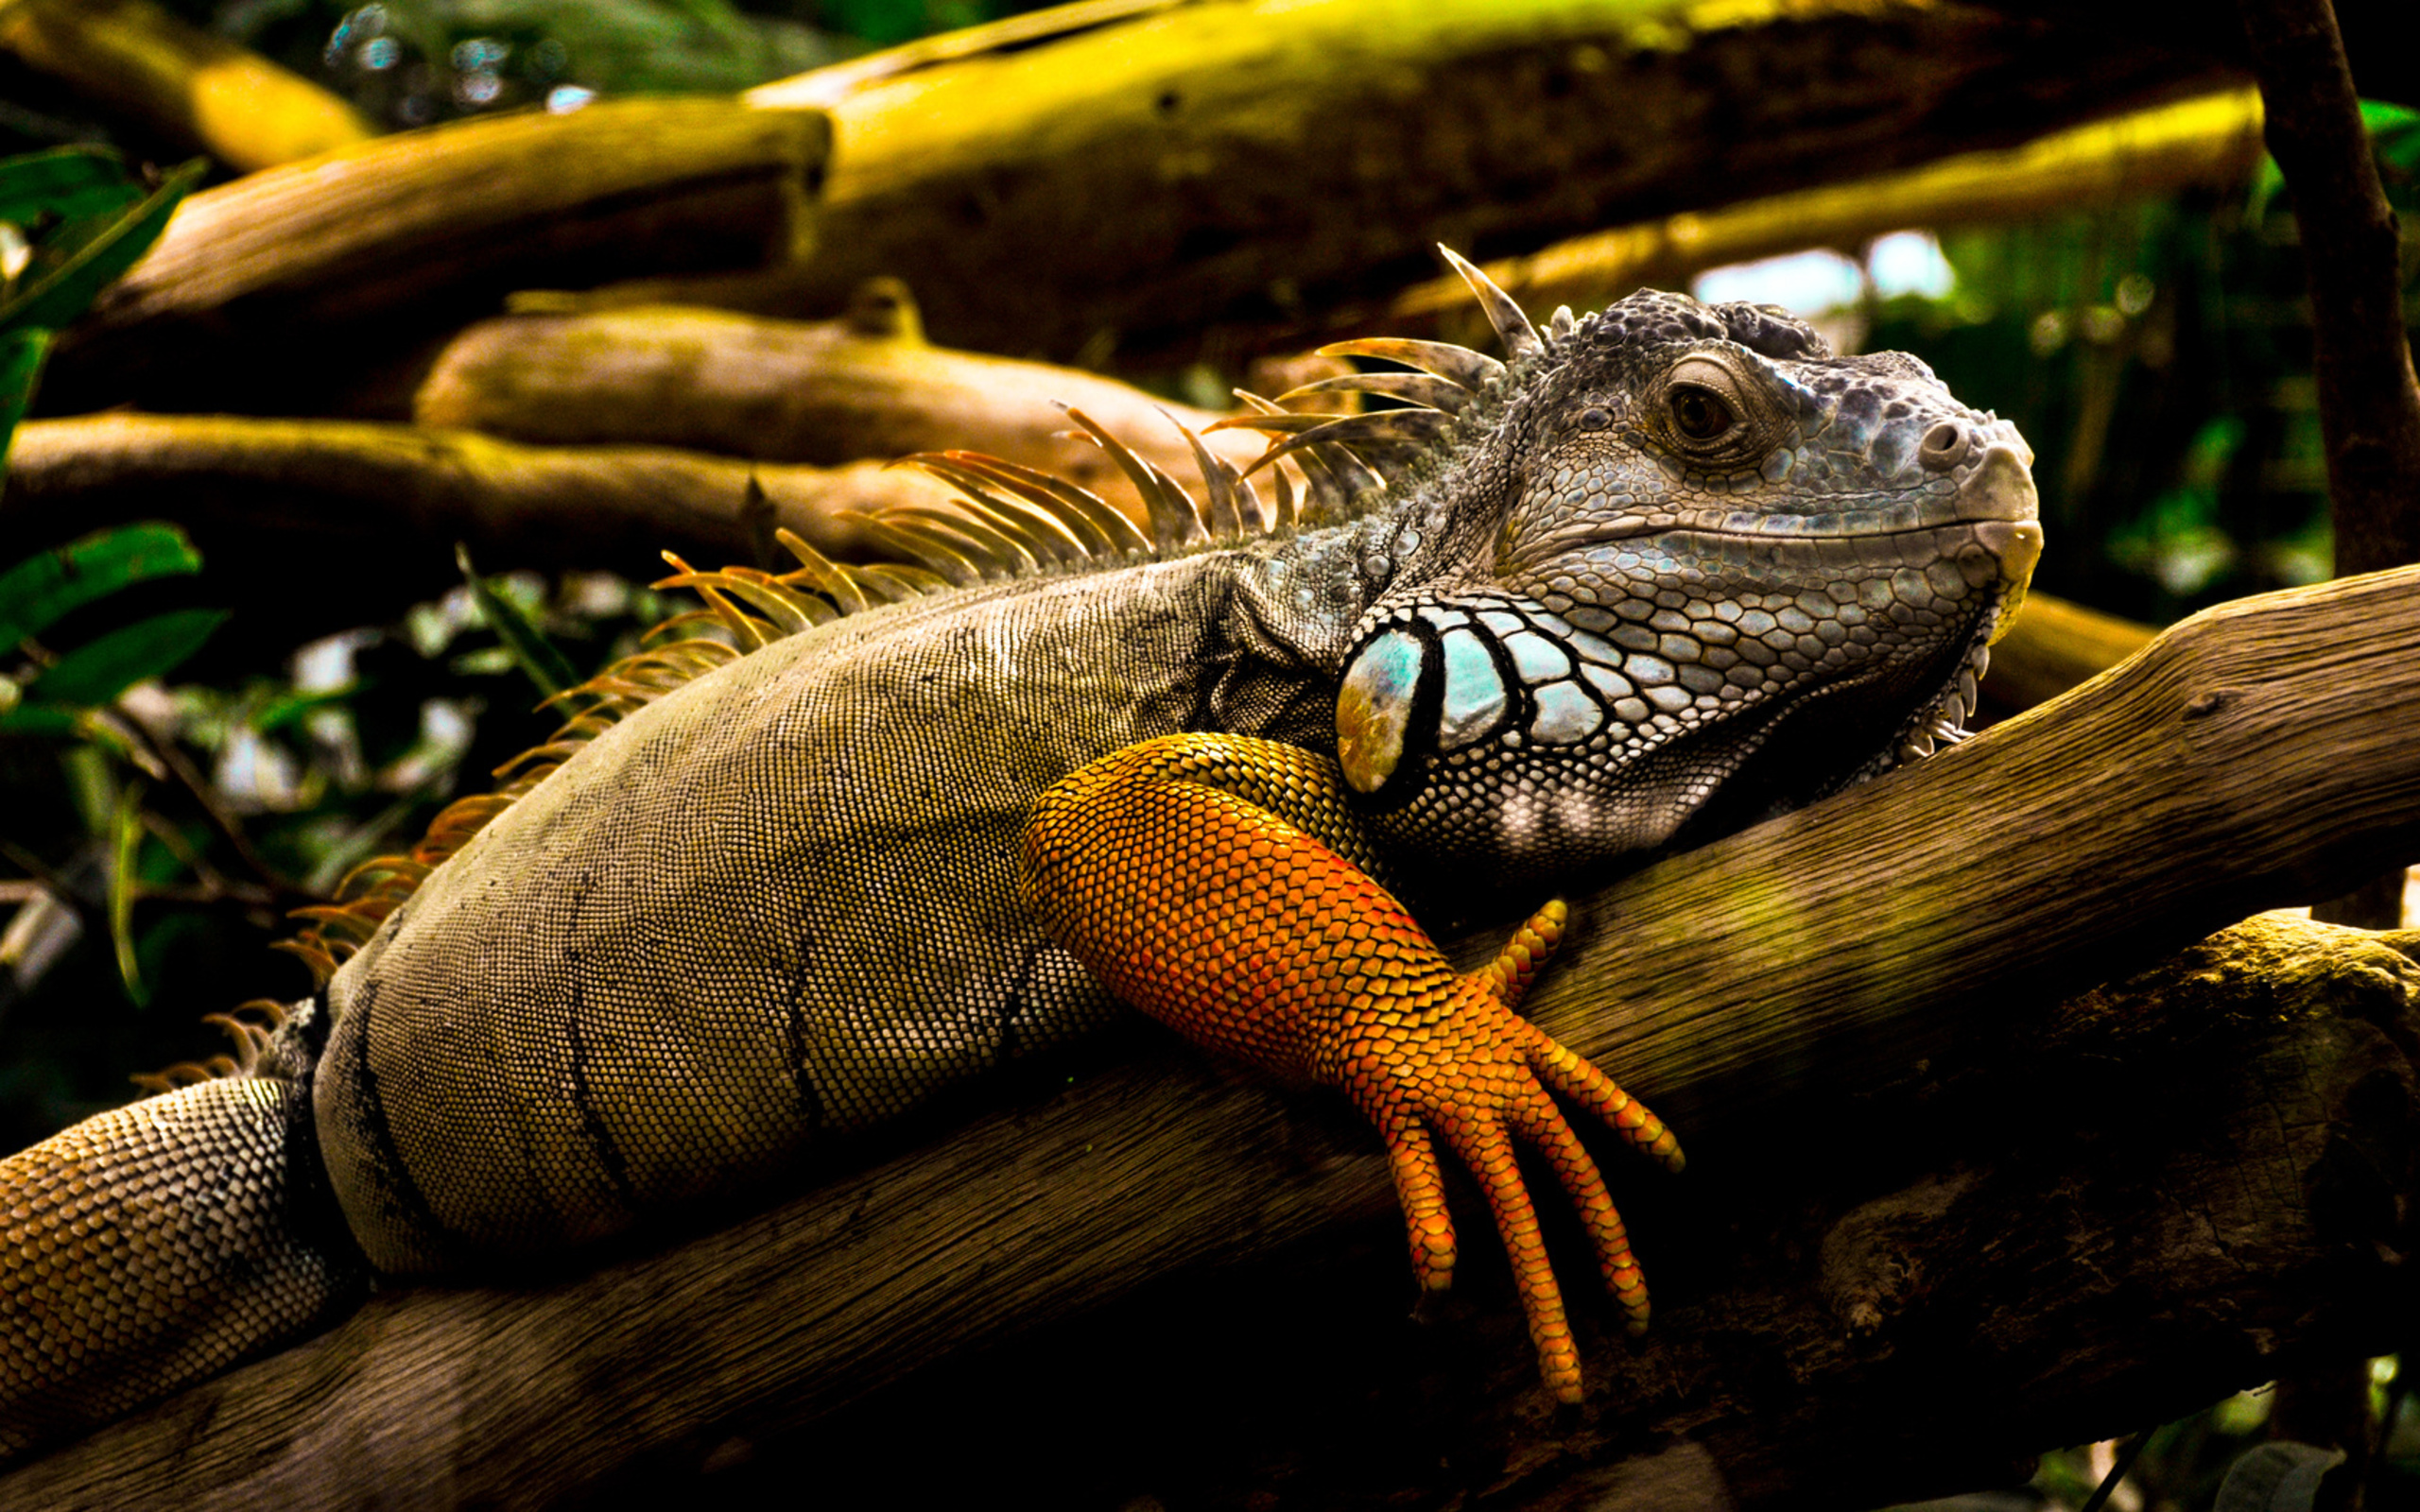 Hd Wallpapers Images: Iguana HD Wallpapers & Images (High Definition